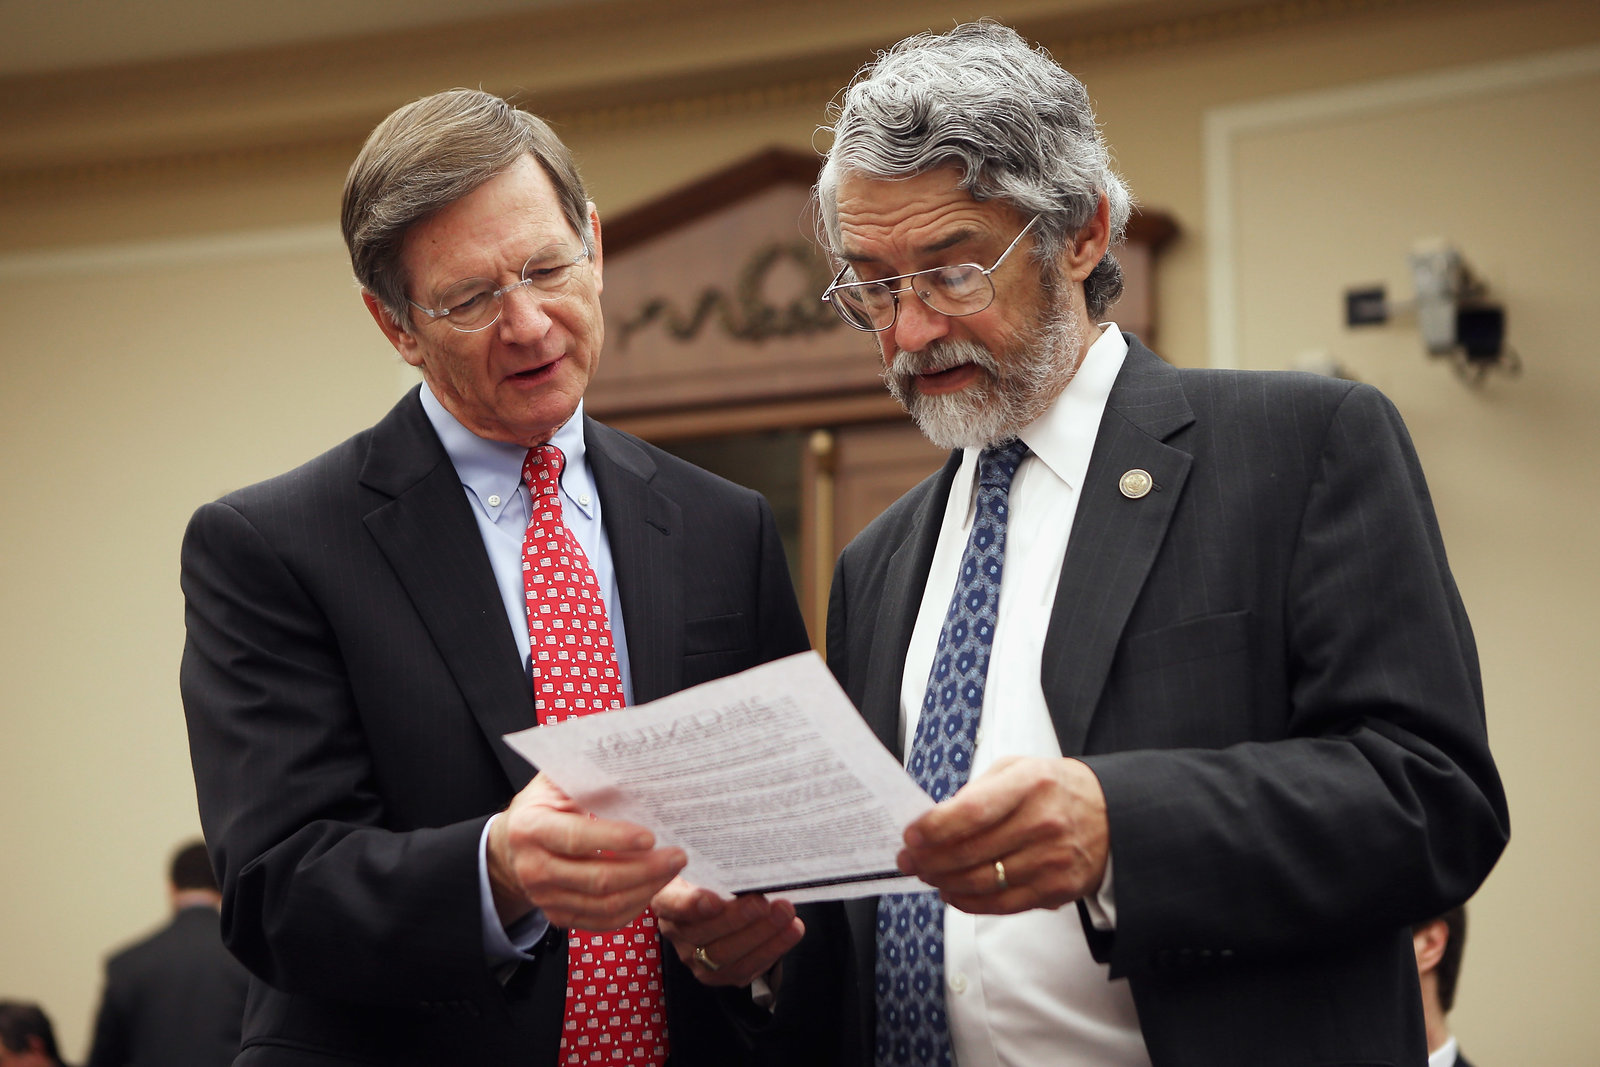 Rep. Lamar Smith has led Congressional efforts to cloud climate science